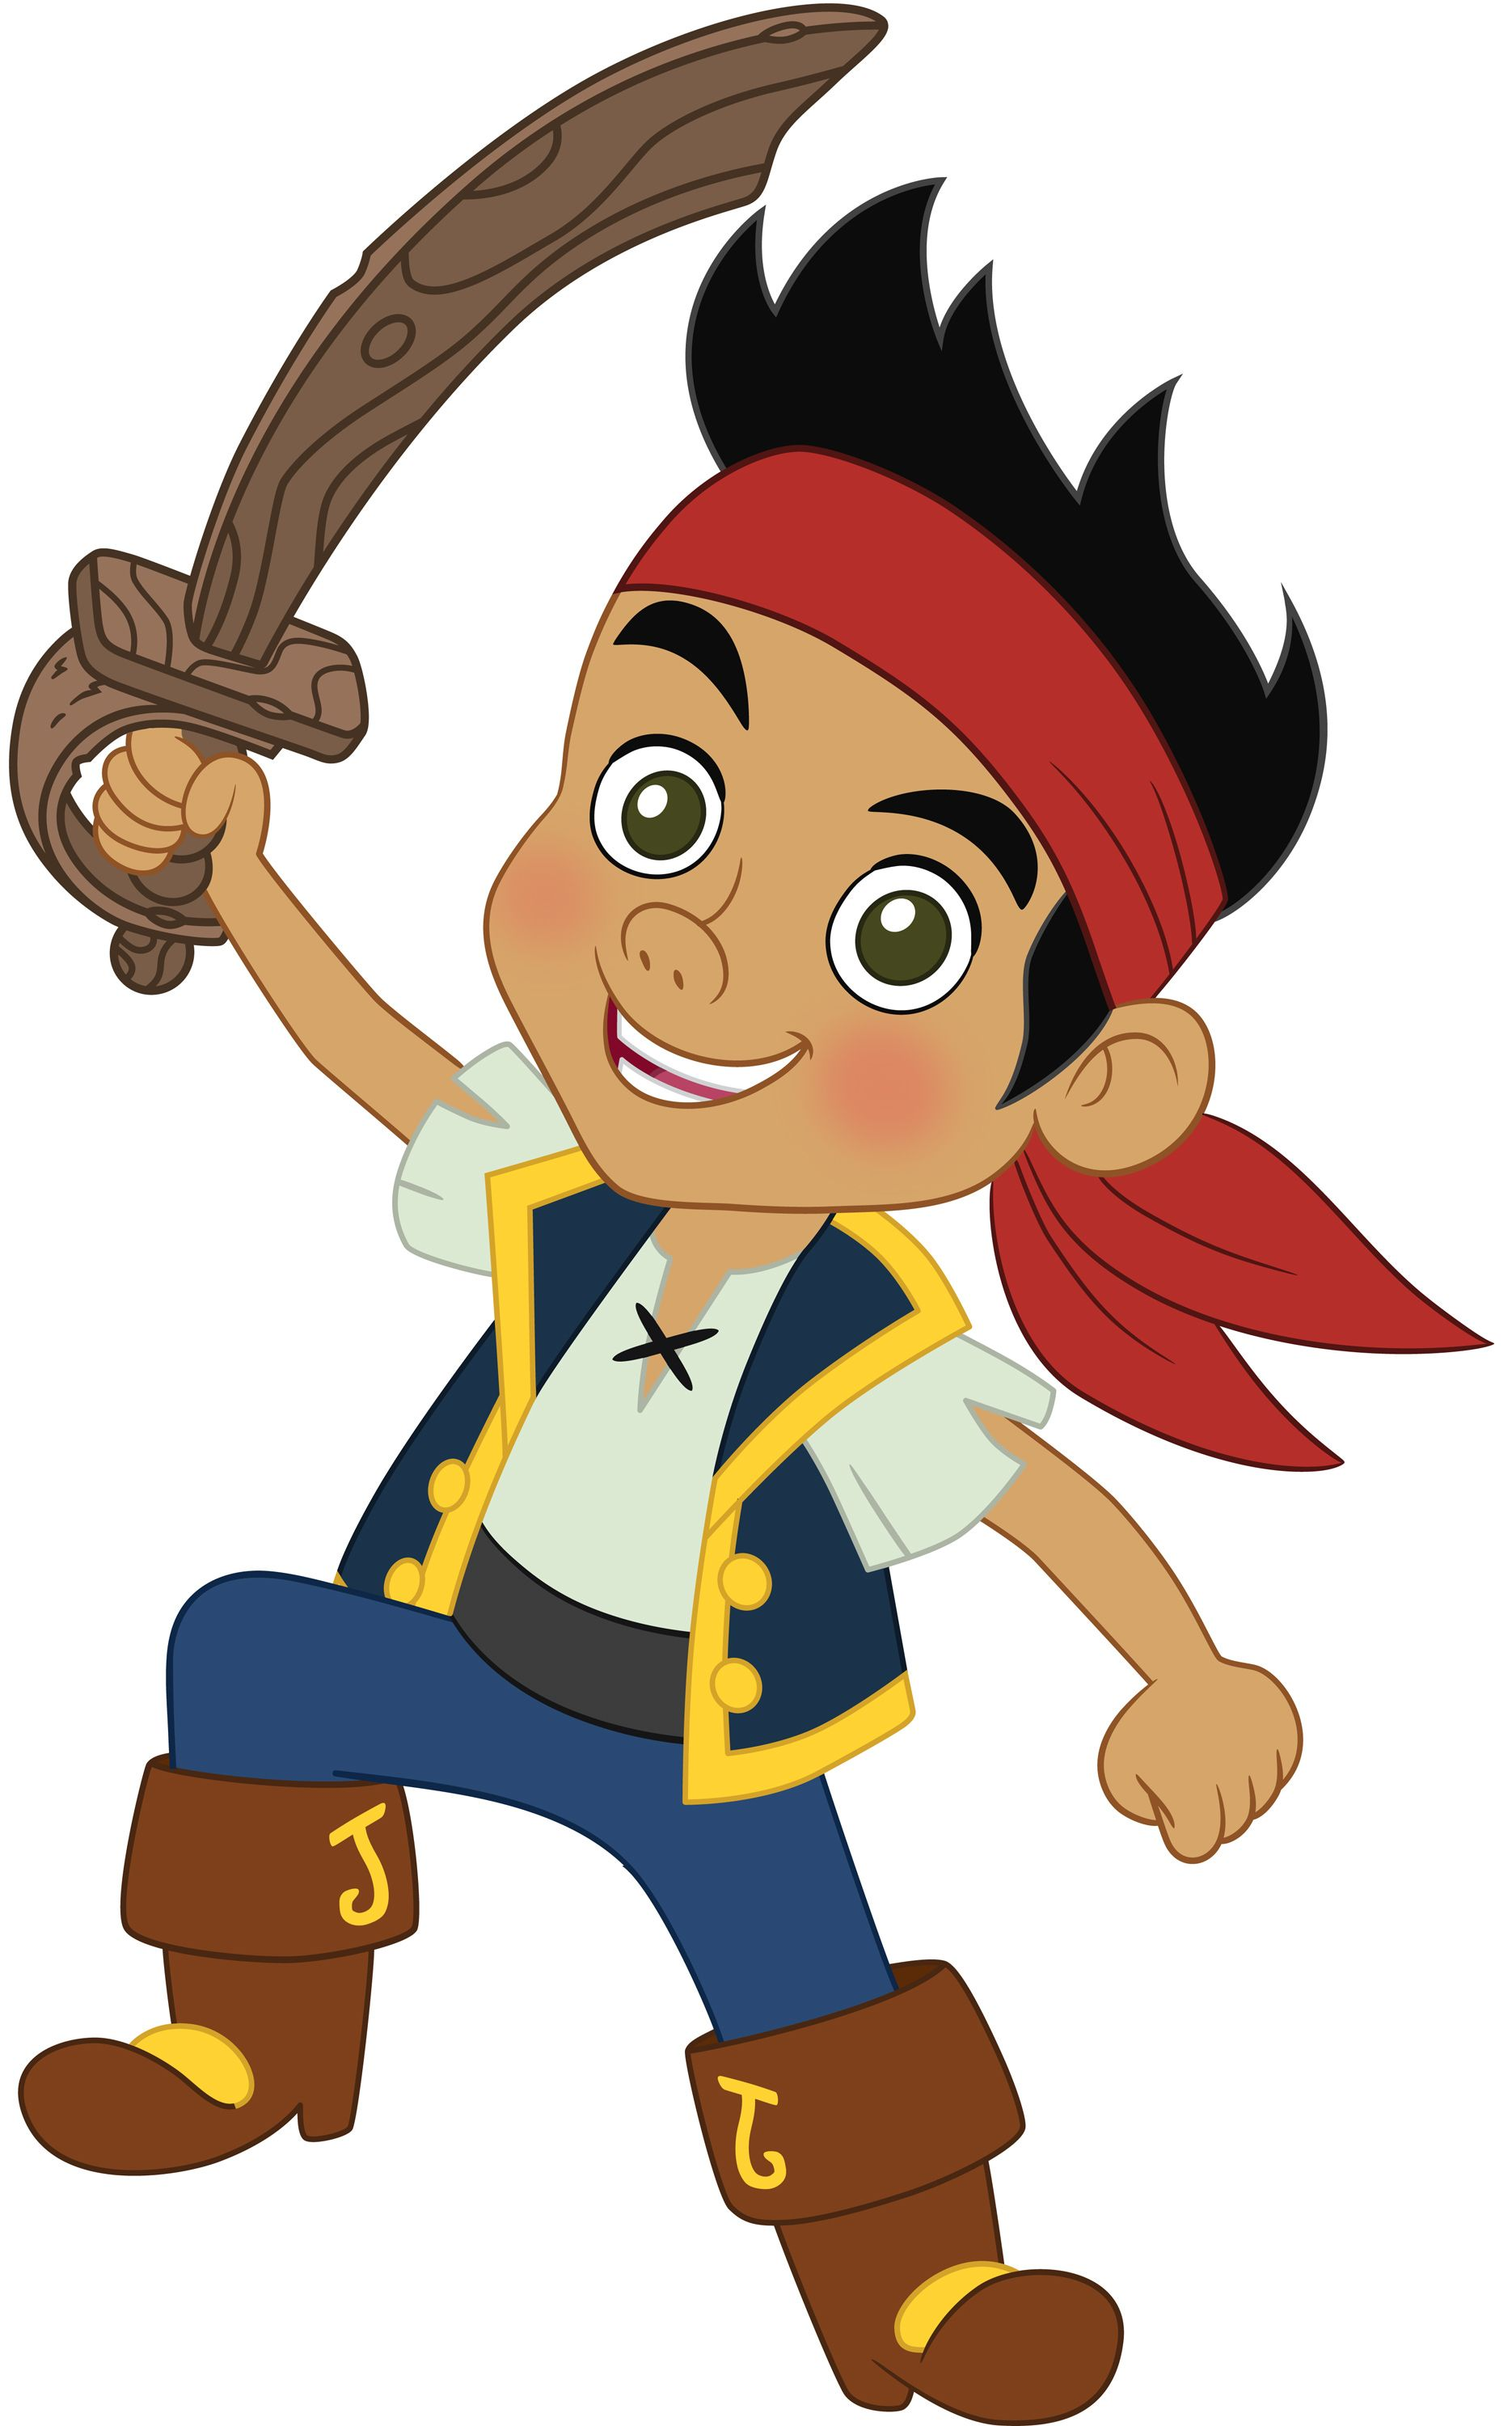 1870x3000 Jake And The Never Land Pirates Clipart 1.jpg Party